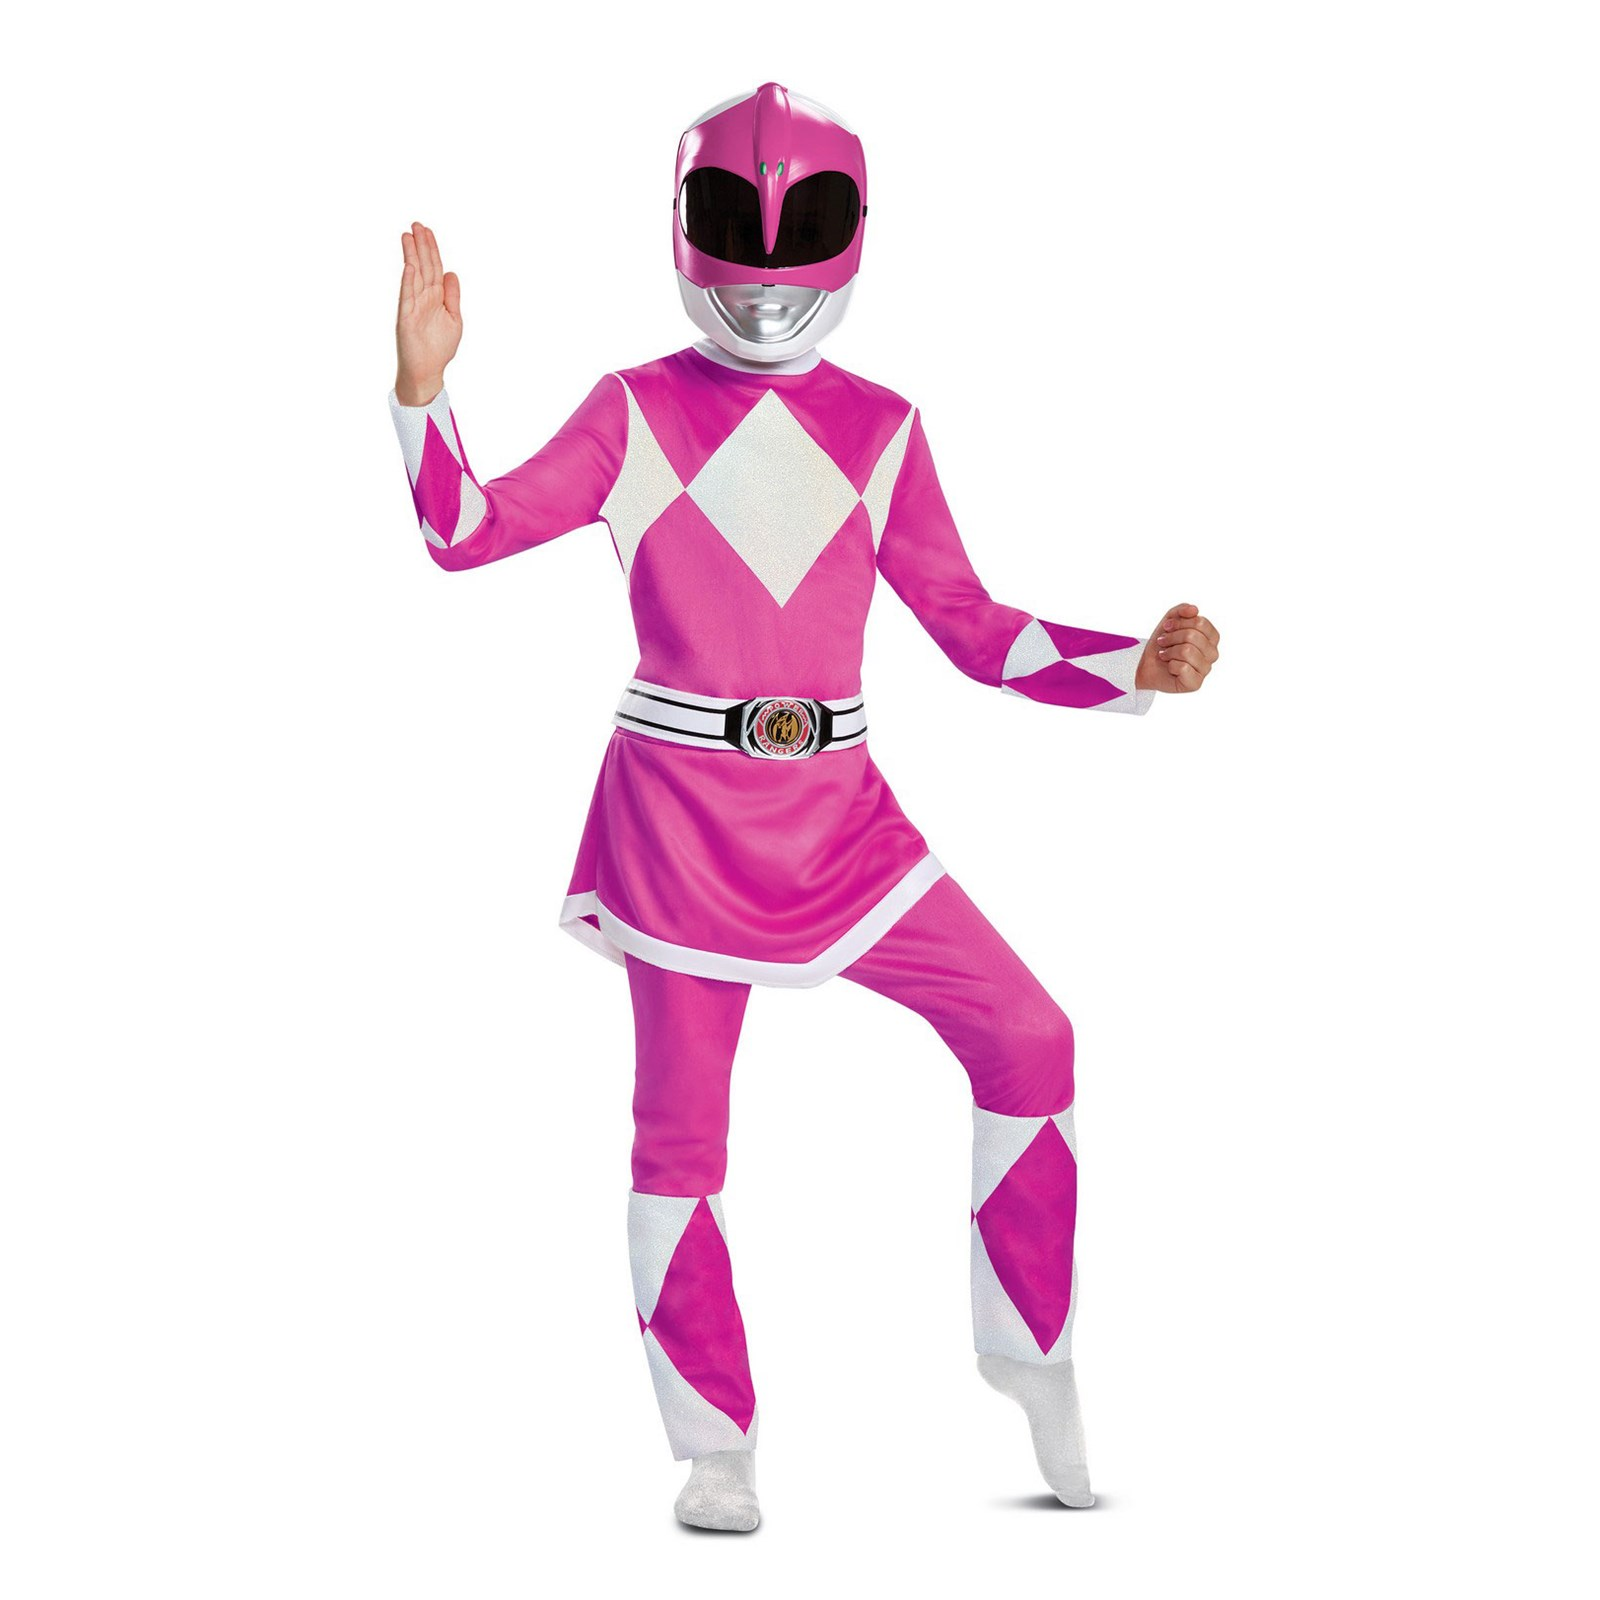 Power Rangers Mighty Morphin Pink Ranger Deluxe Child Costume by Disguise